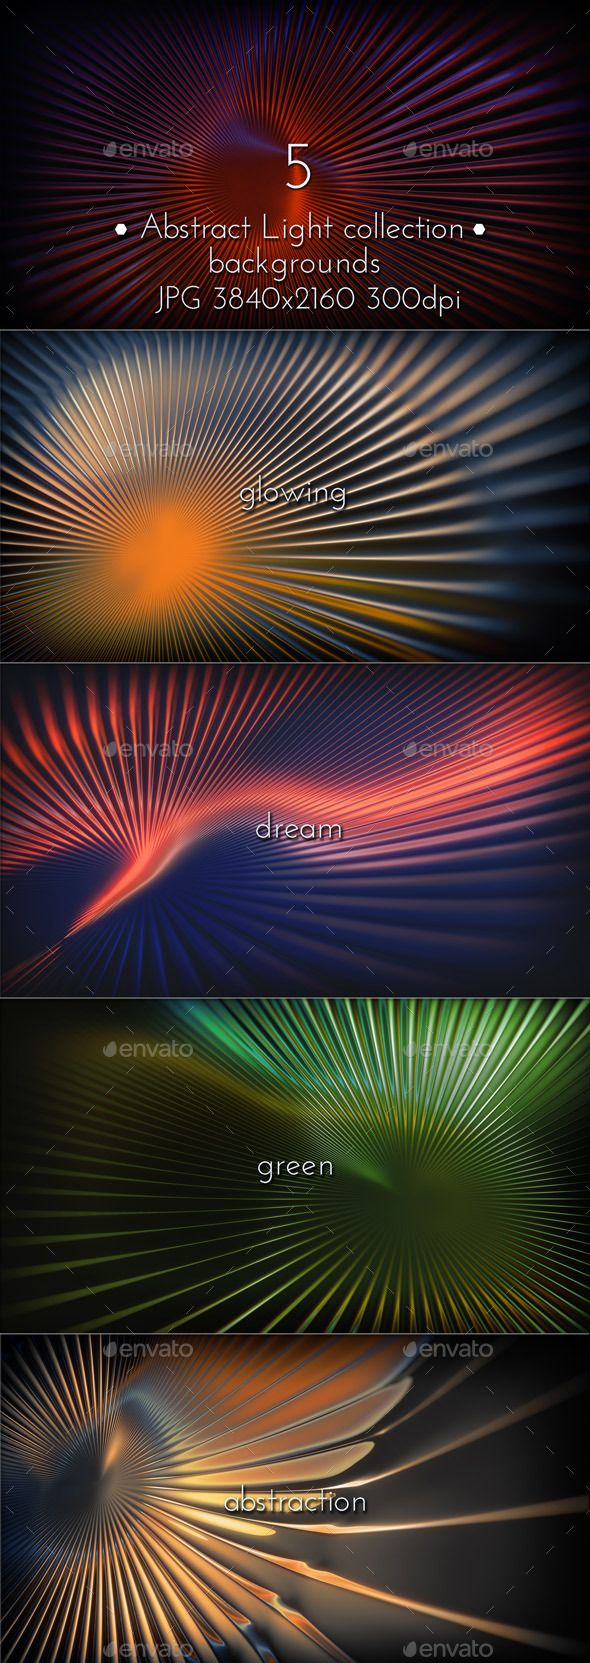 Dream Light Abstraction 3d backgrounds collection. 5 Hi-res JPG. 3840×2160, 300 DPI. Graphicriver back collection. #imagination